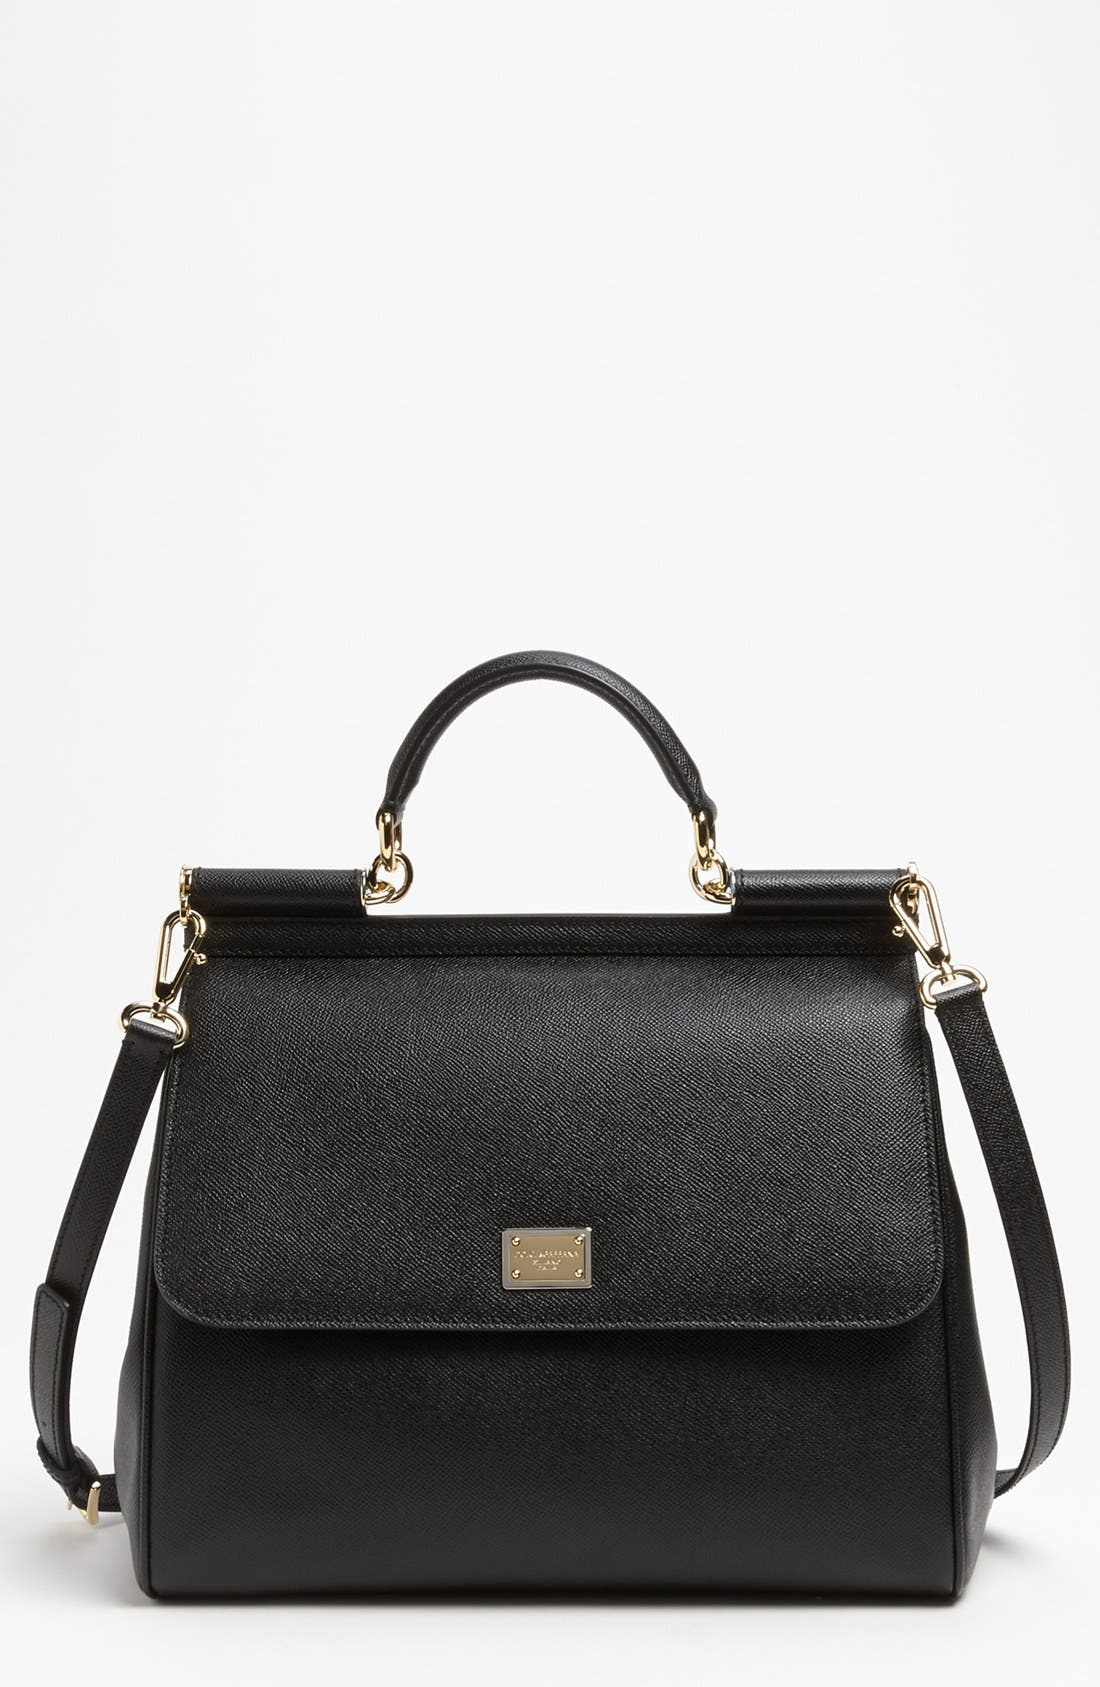 Main Image - Dolce&Gabbana 'Miss Sicily' Top Handle Leather Satchel